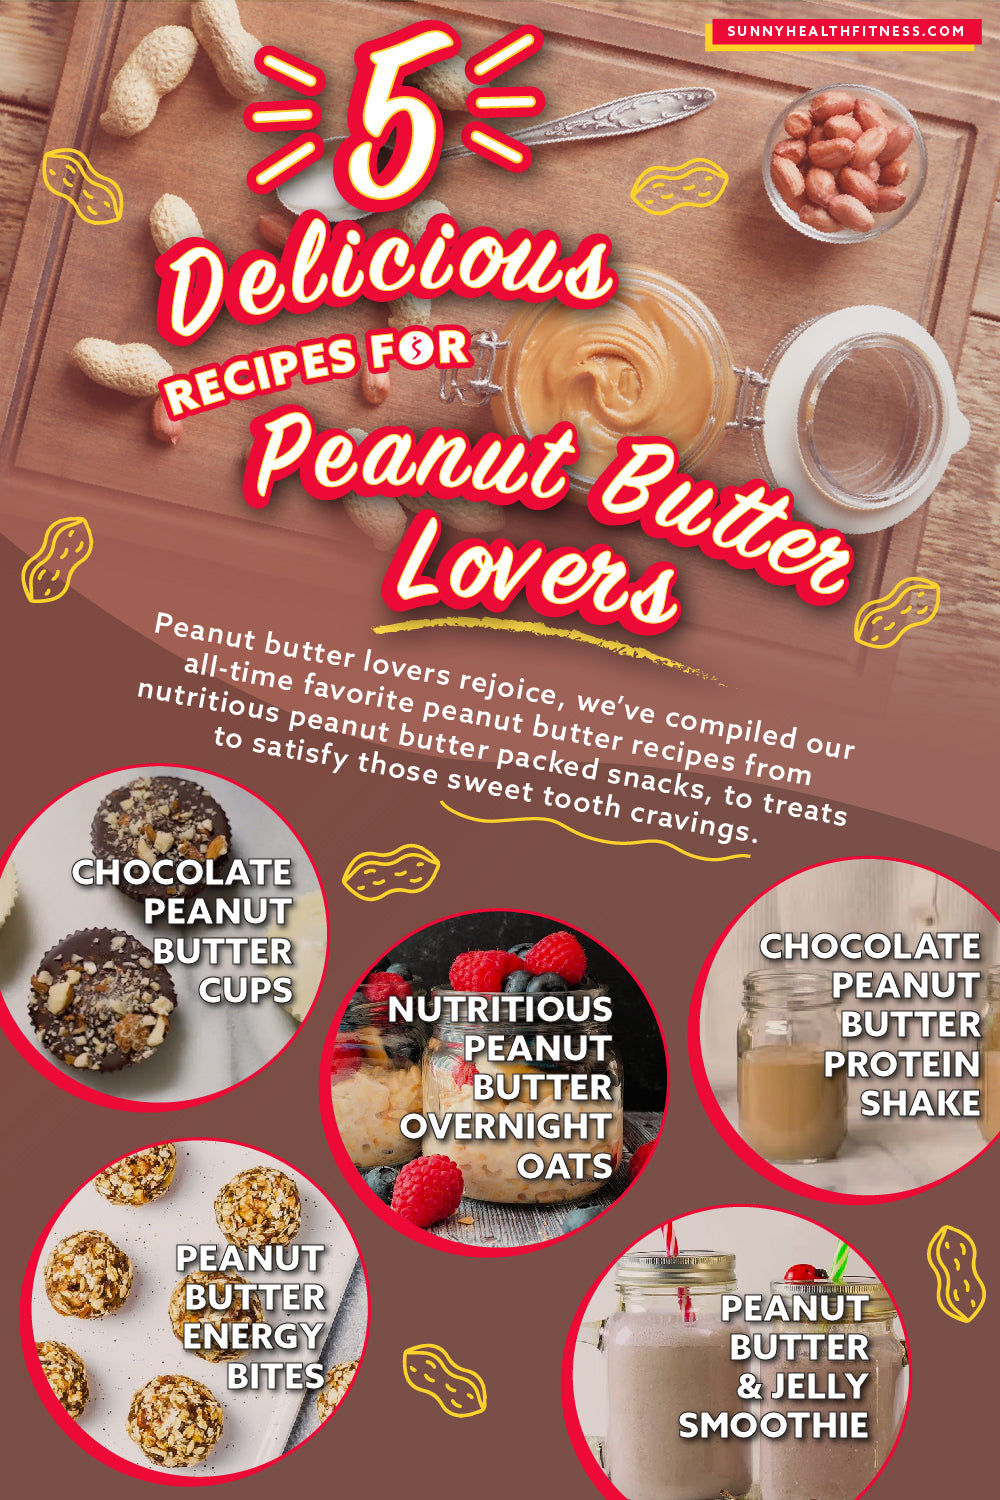 5 Delicious Recipes for Peanut Butter Lovers Infographic